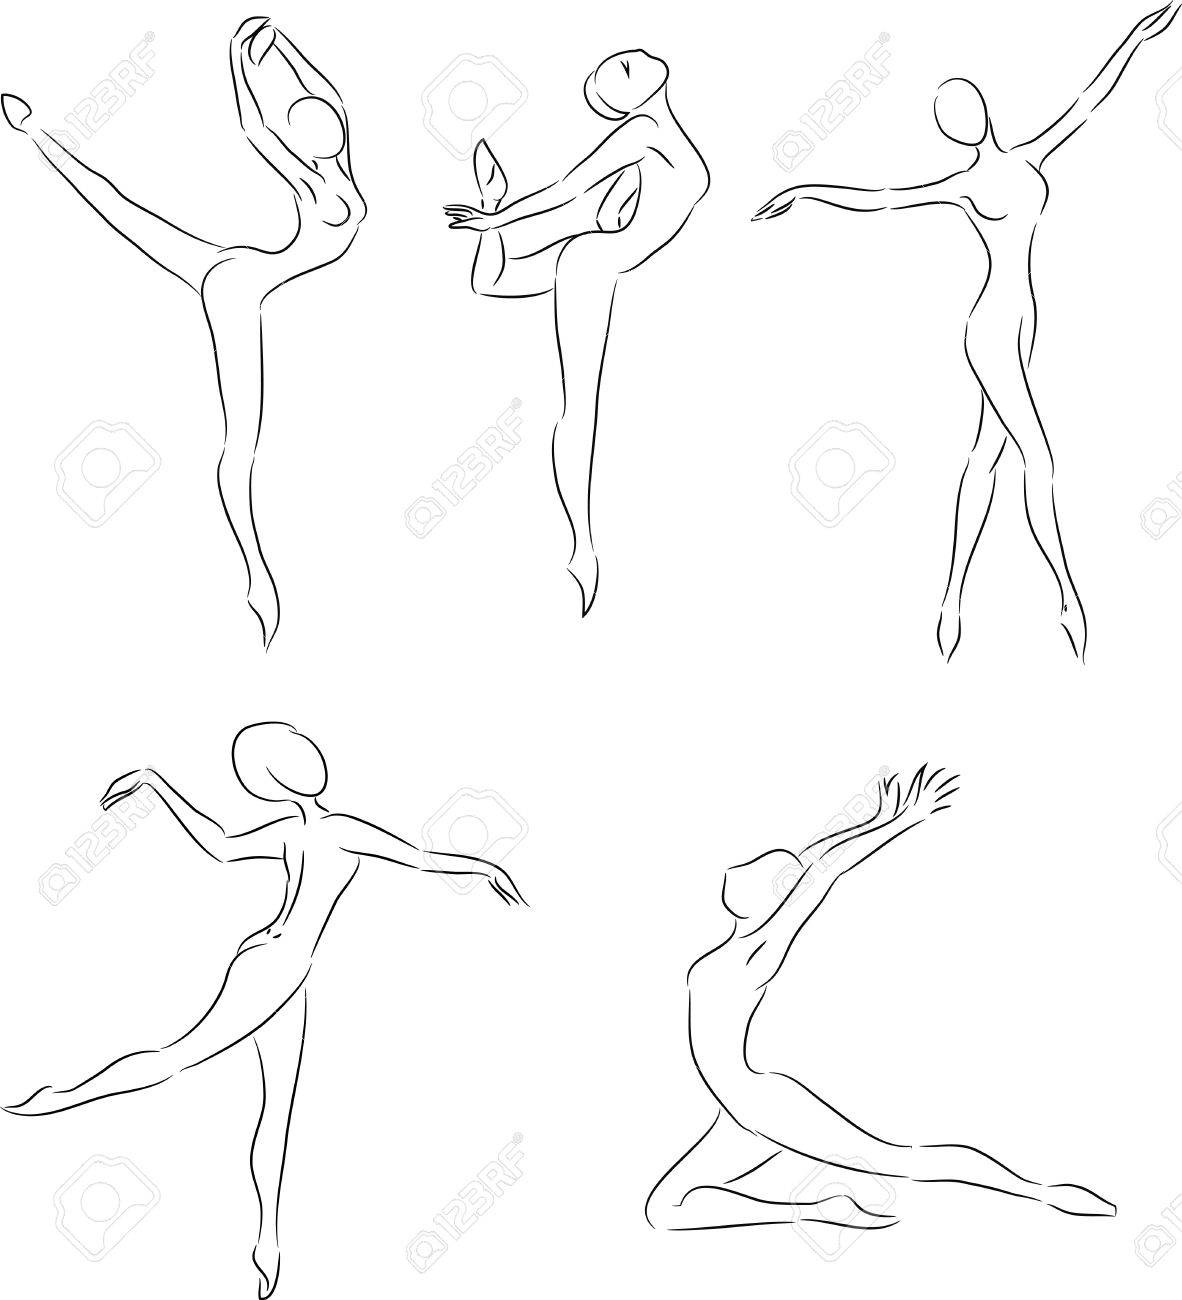 1182x1300 Ink Sketches Of Ballet Dancer's Motions Royalty Free Cliparts